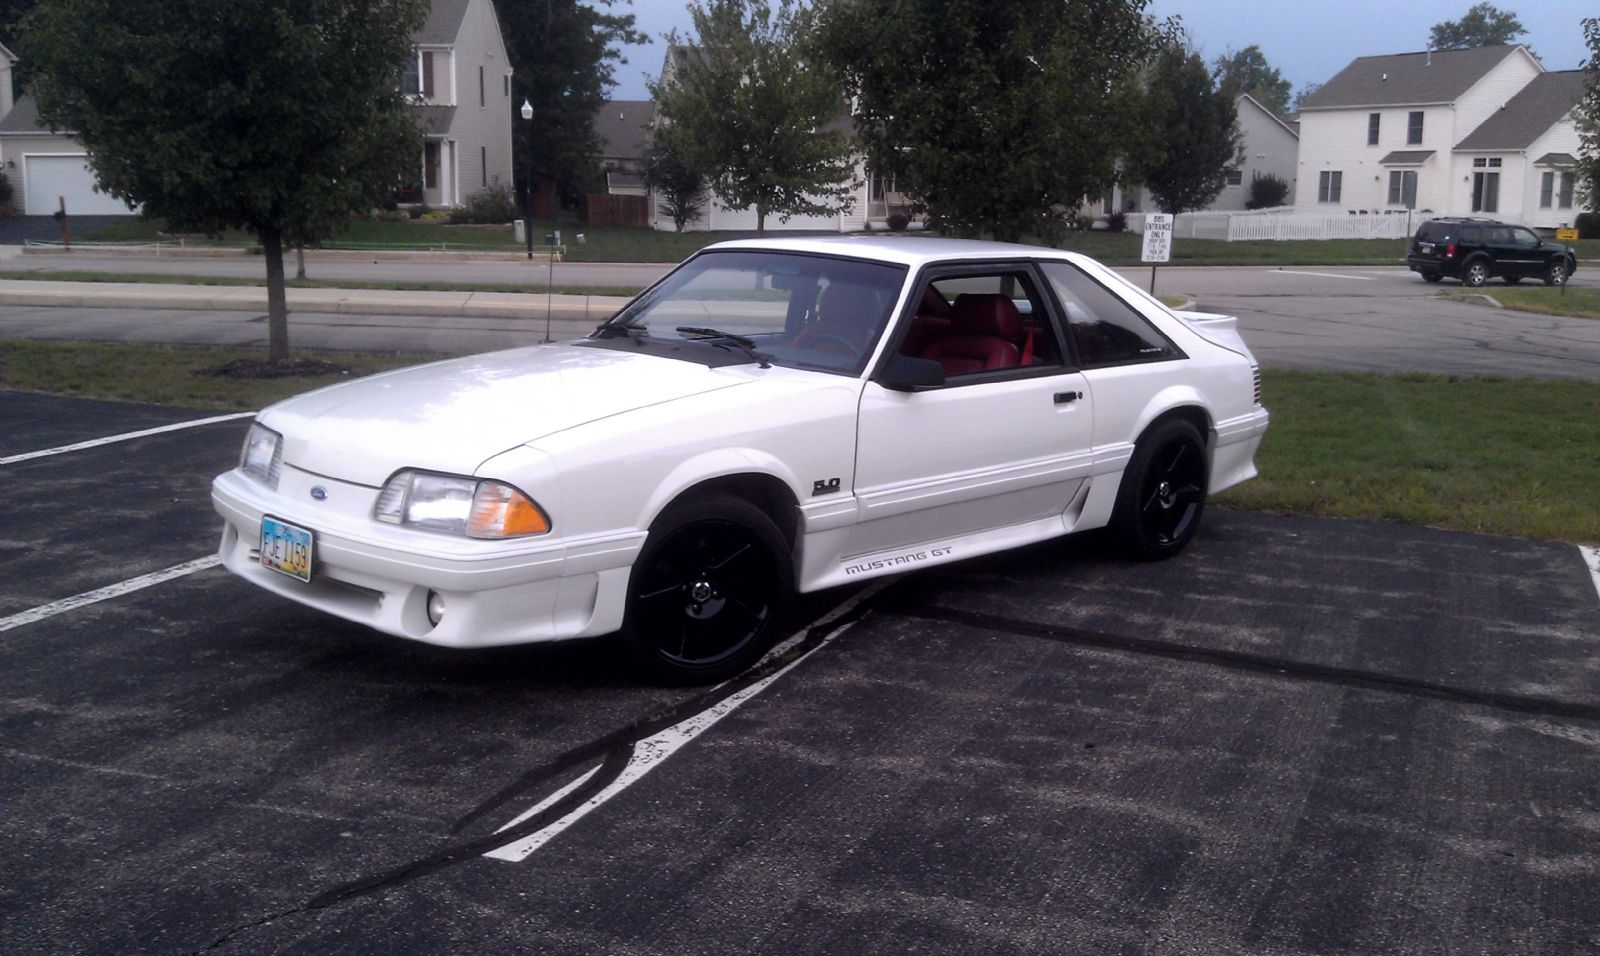 1989 ford mustang gt for sale columbus ohio rh modifiedcartrader com 1989 ford mustang lx owners manual 1989 ford mustang manual transmission